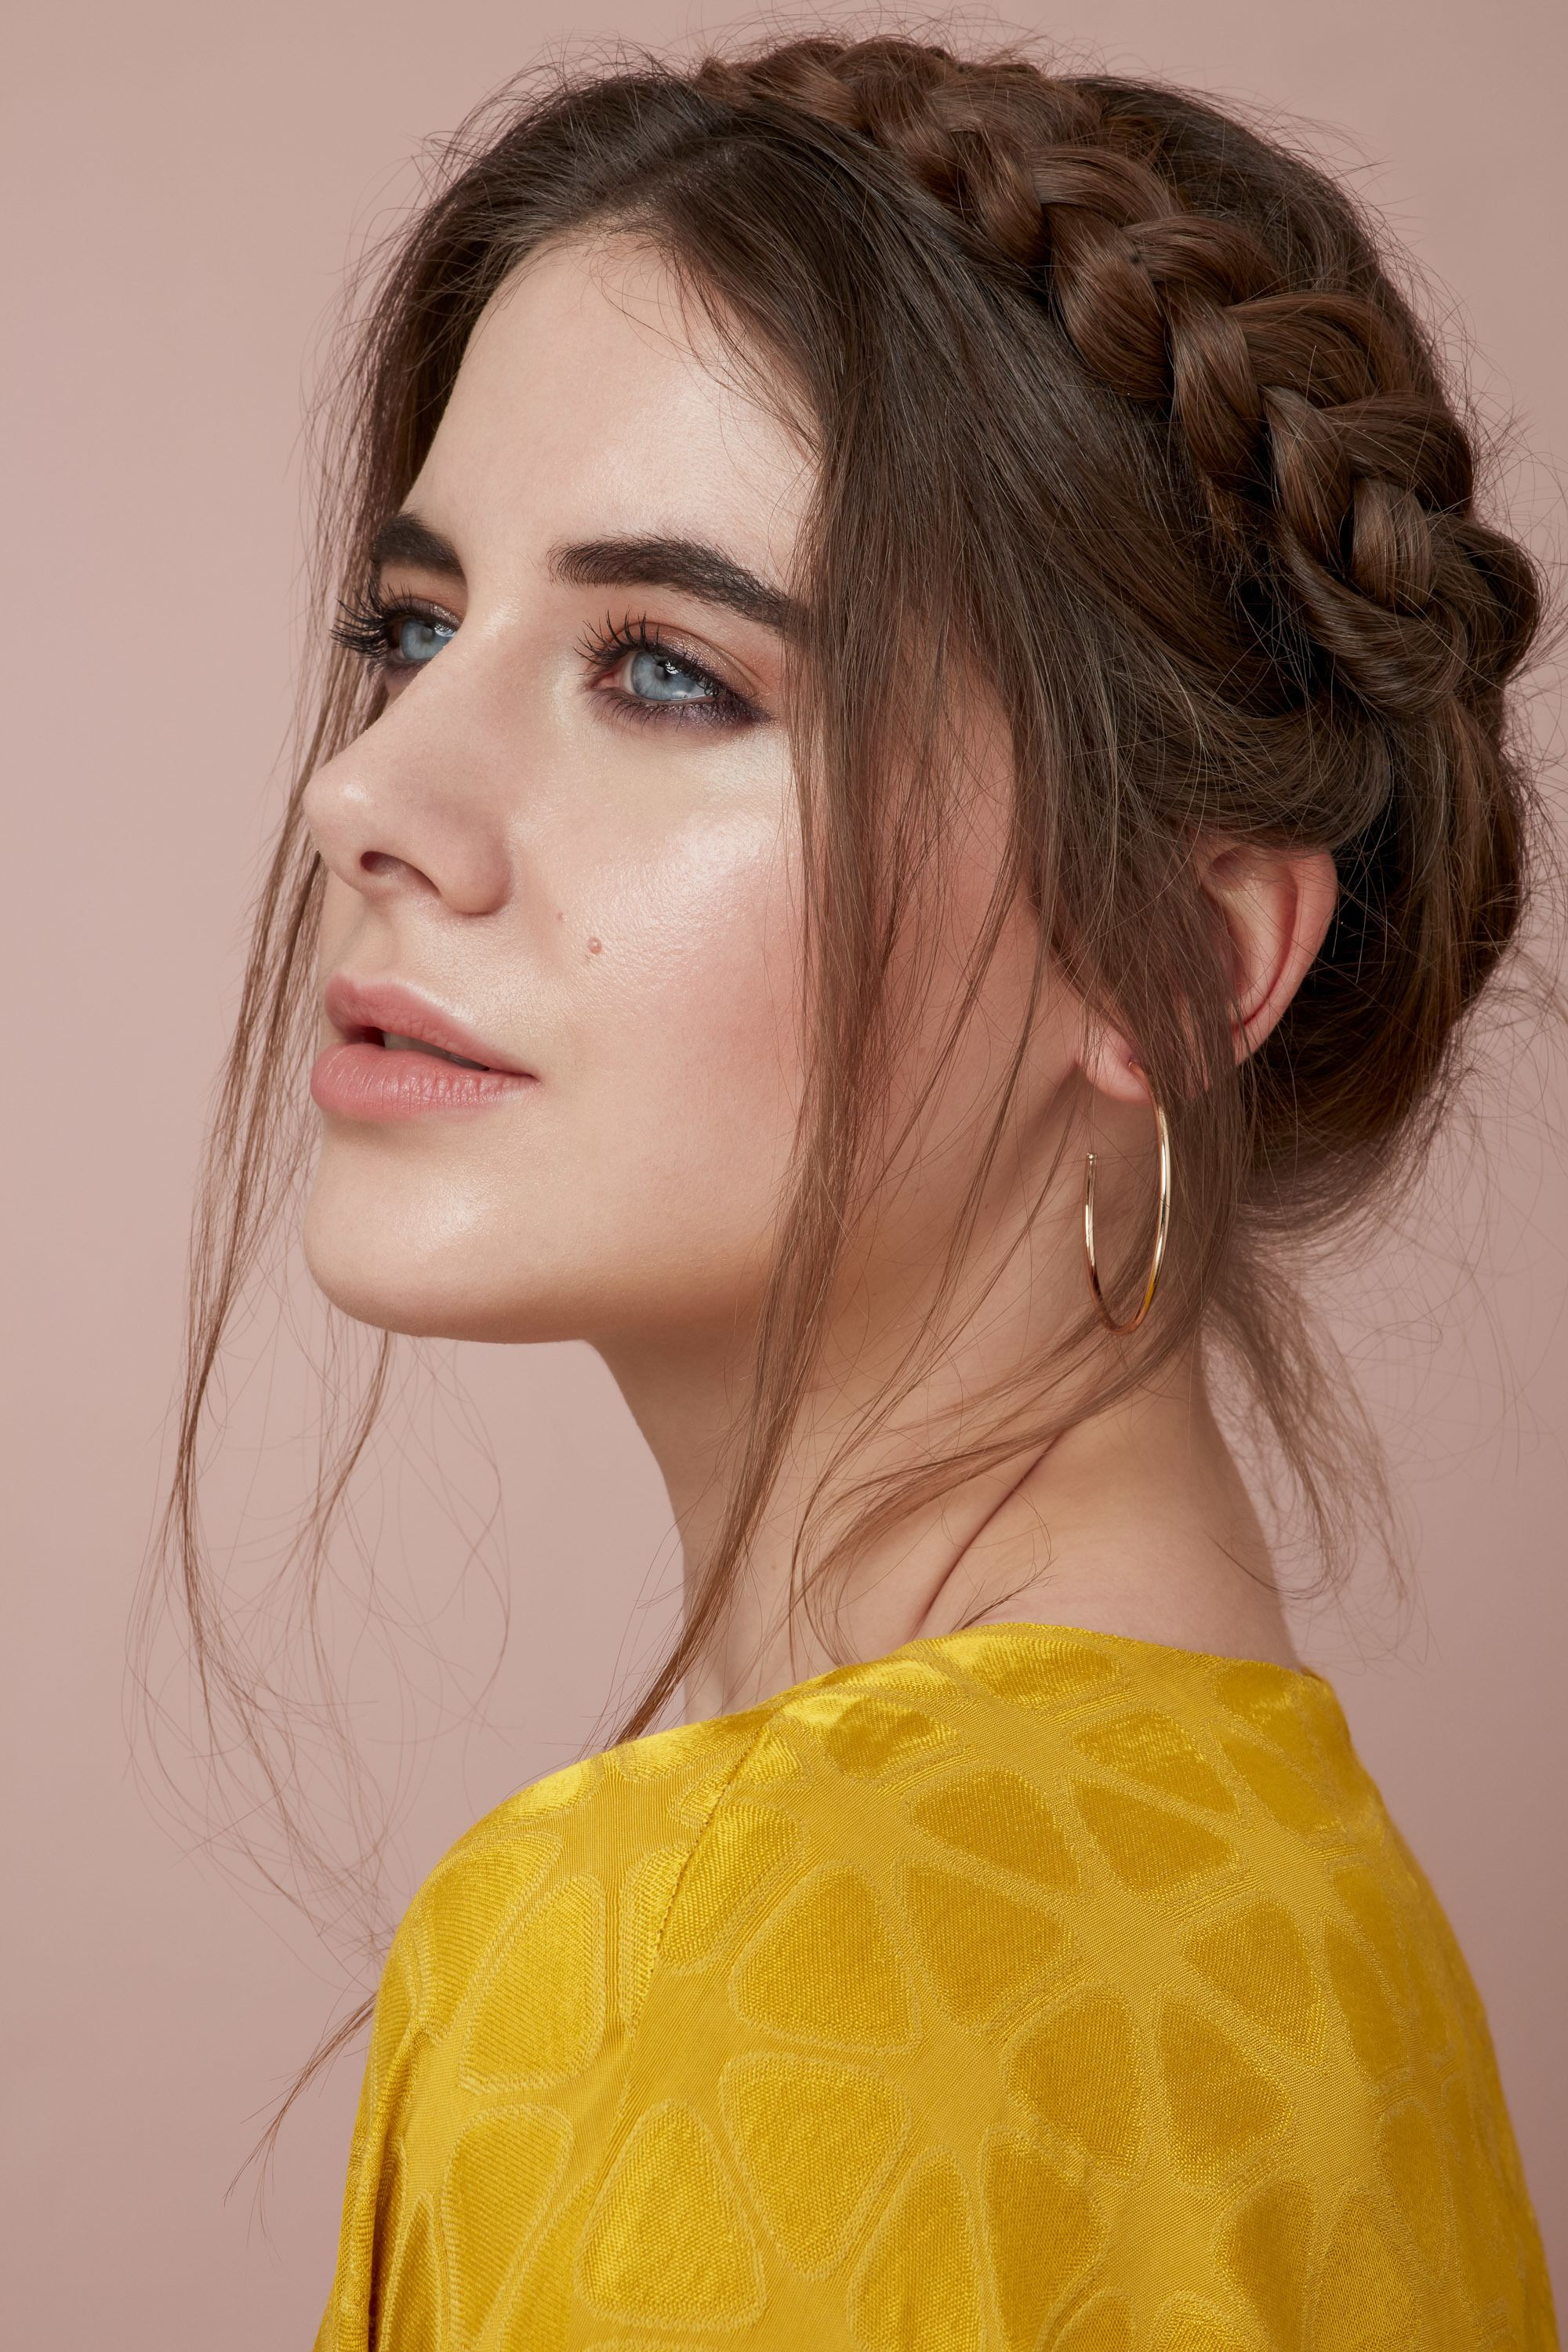 Valentines hair: Close-up of a brunette woman with her hair in a milkmaid braid with loose undone strands, wearing a yellow top